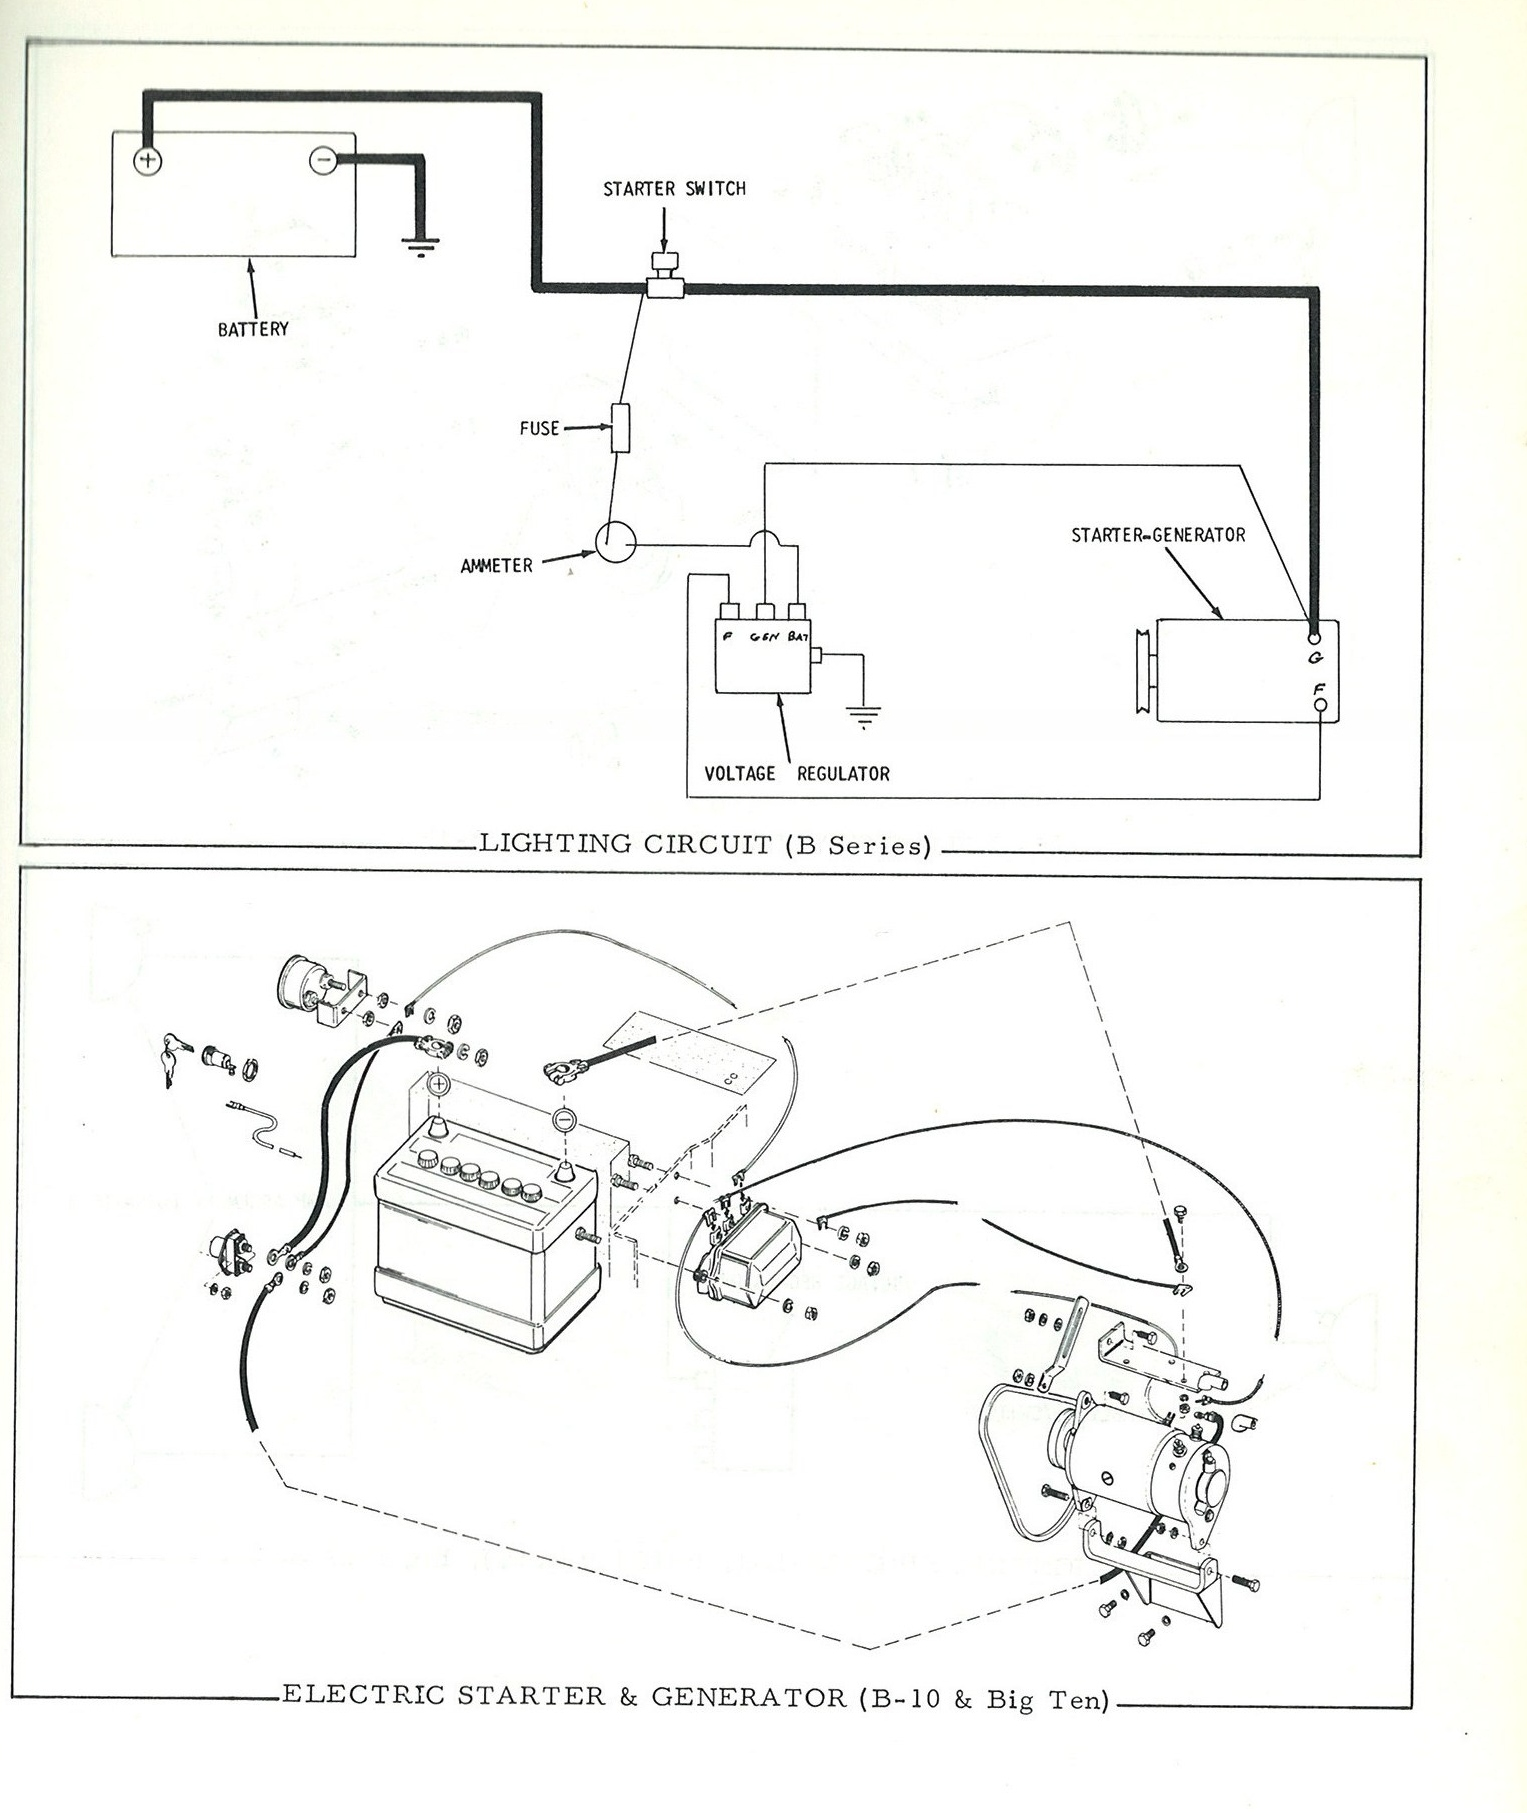 allis wd wiring diagram wiring library 1948 Farmall Cub Wiring Diagram wiring diagram allis chalmers 712 data wiring diagrams \\u2022 allis chalmers 200 wiring diagram allis